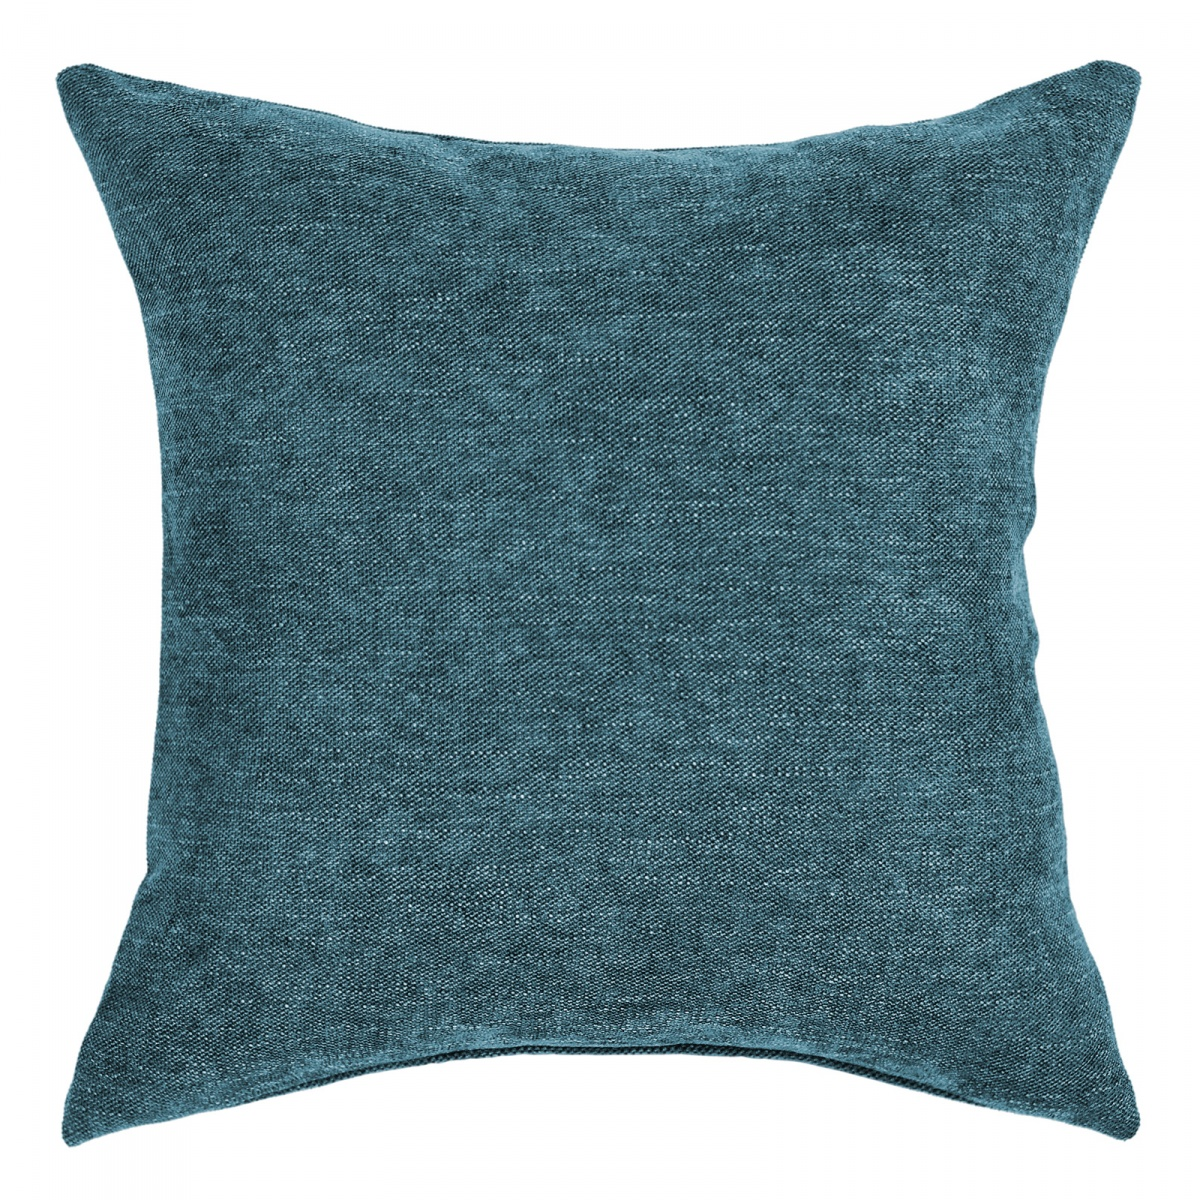 Liam Kingfisher Cushion - 55x55cm